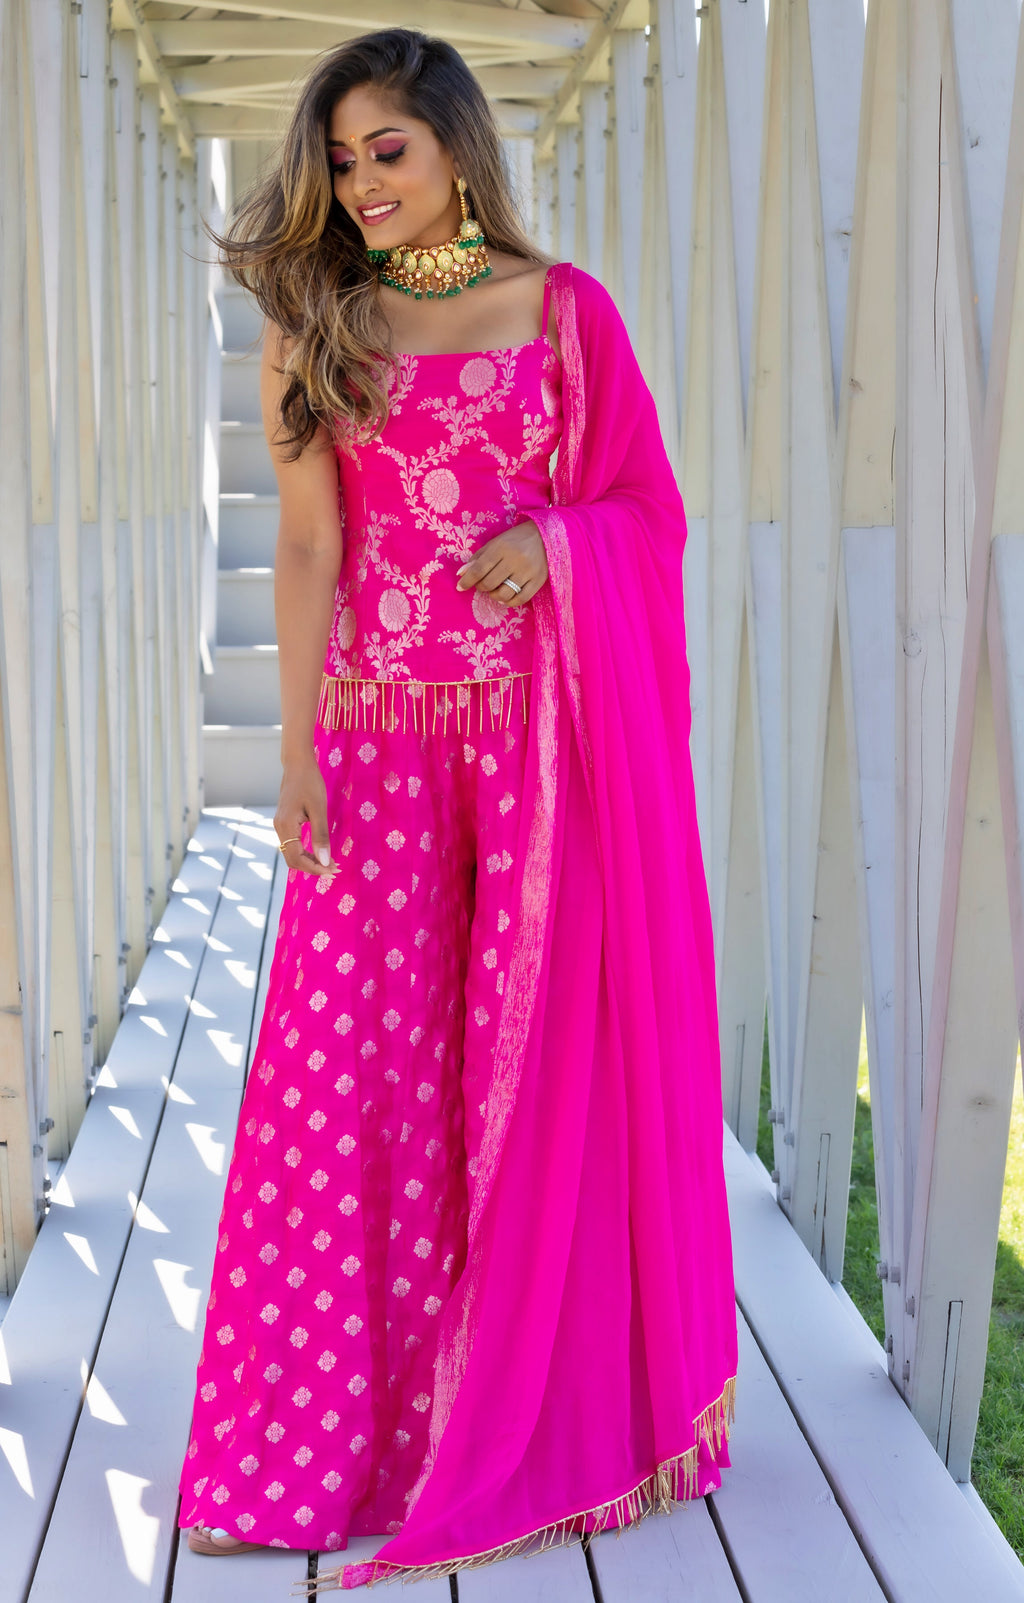 Hot Pink Palazzo Pant Top in Pure Banarasi Brocade - Shop Designer Indo Western Outfits in USA - Sushma Patel